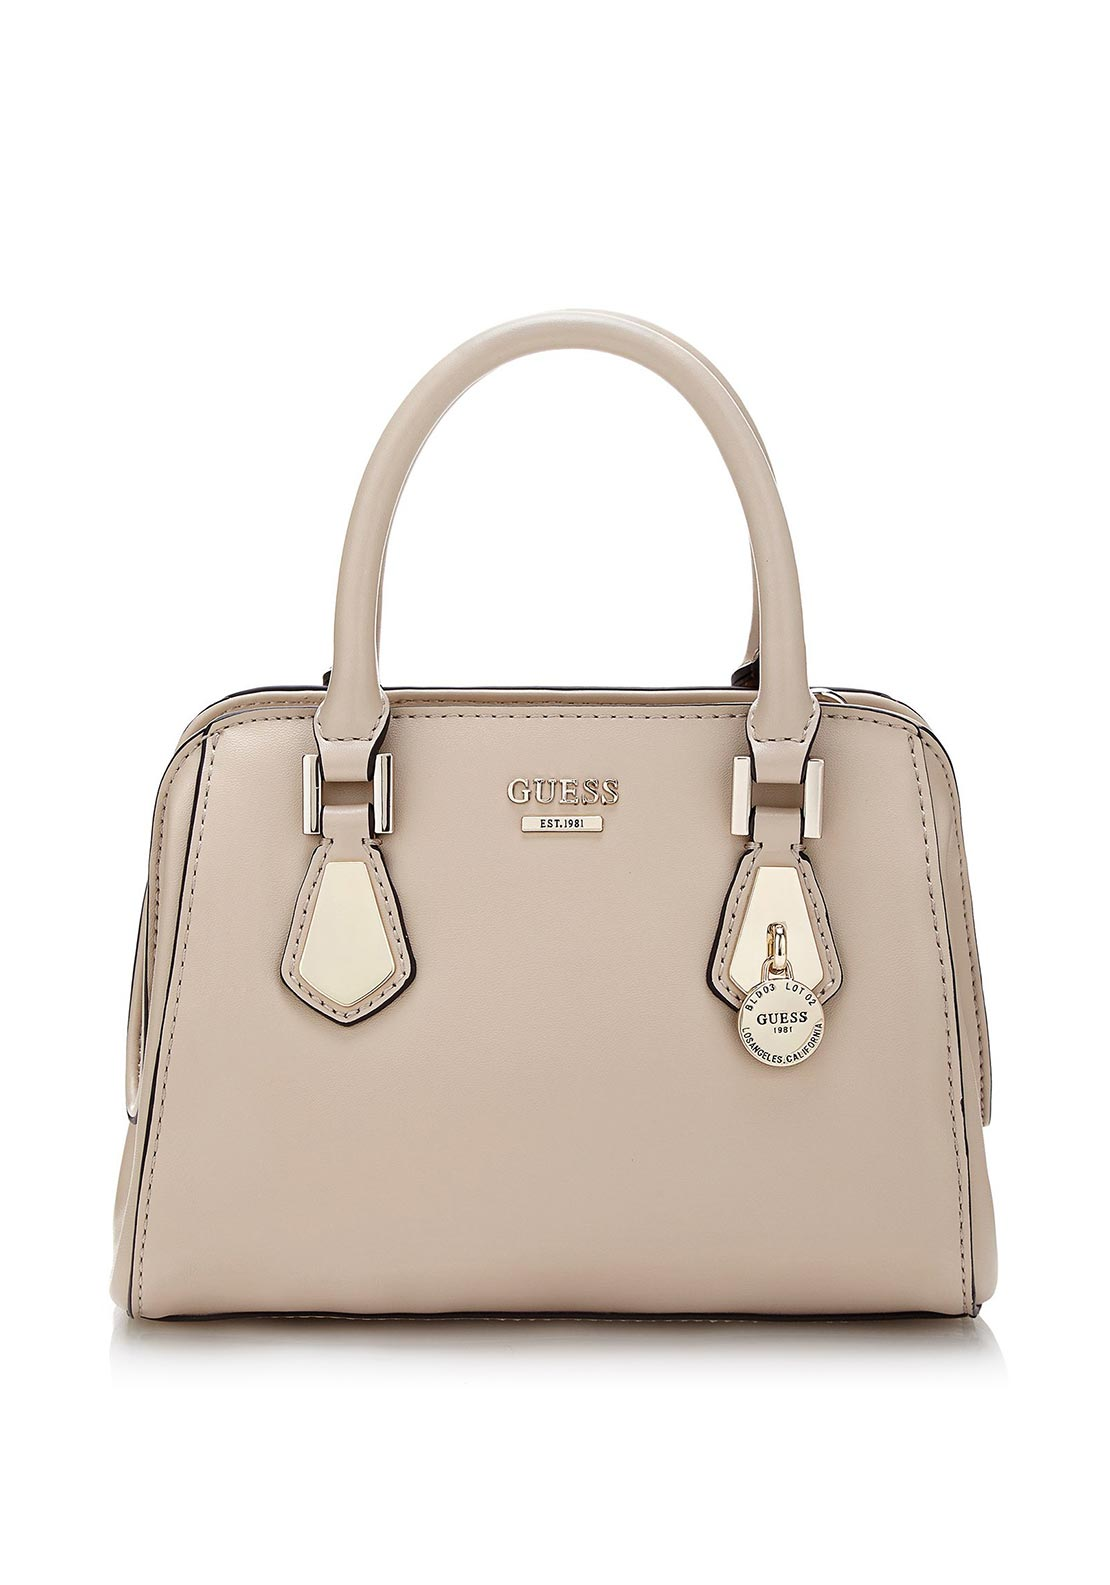 Guess Sophie Mini Grab Bag, Beige